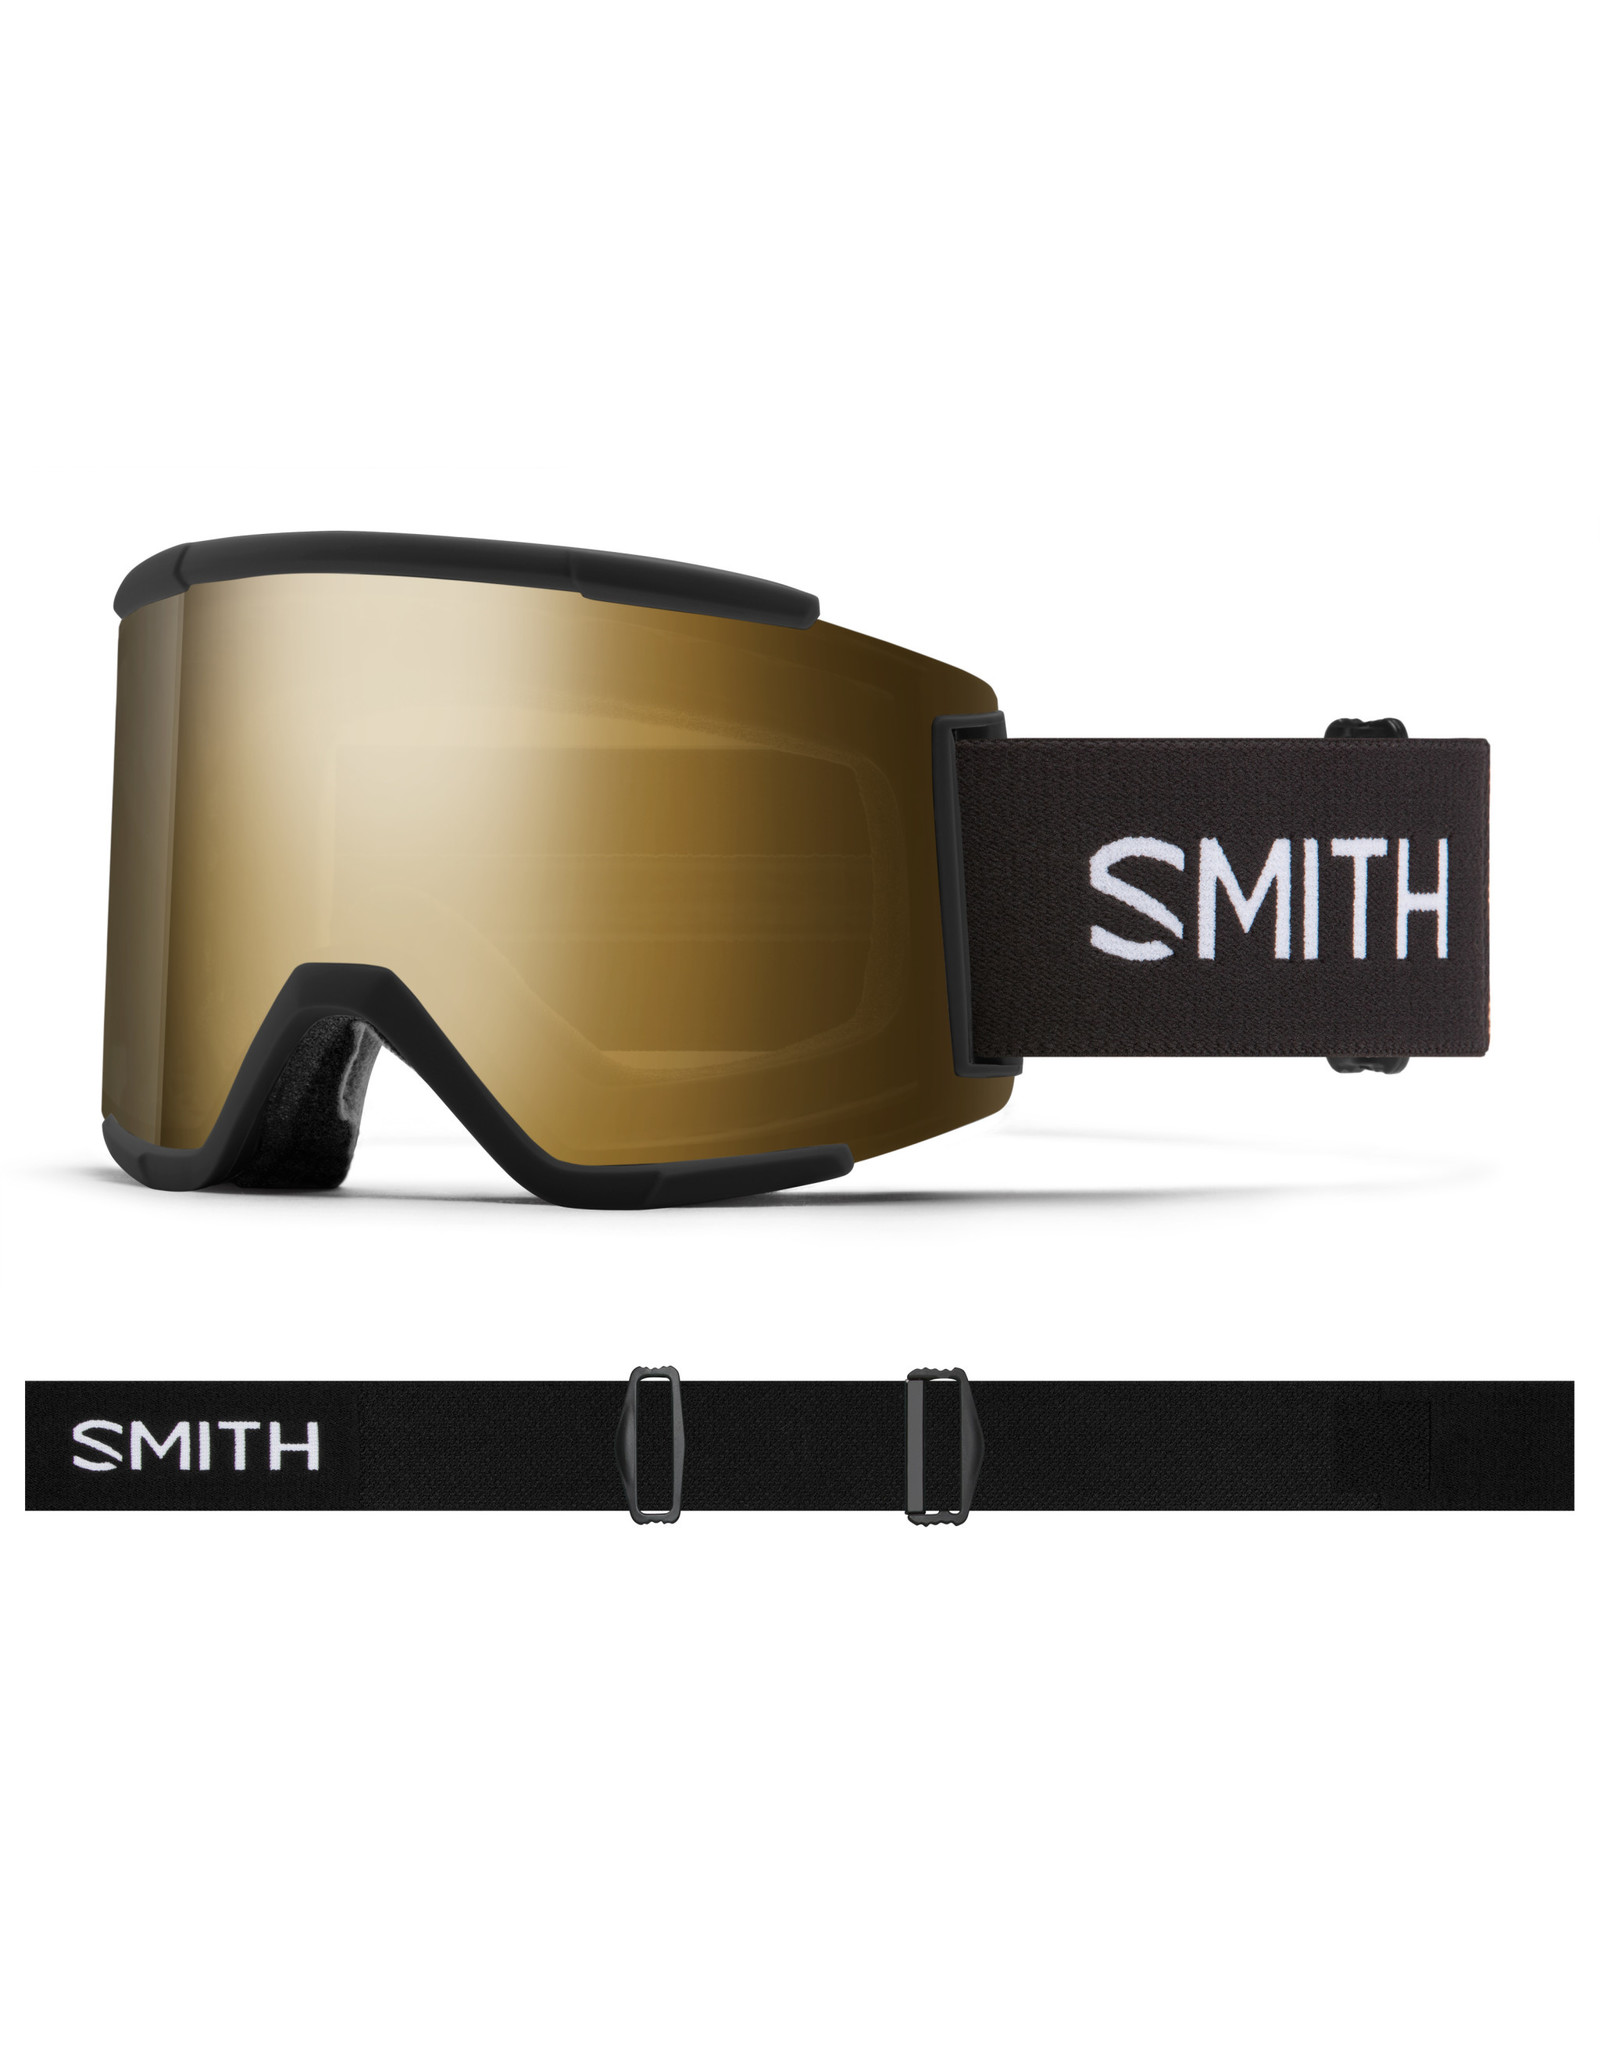 Smith SMITH SQUAD XL BLACK 20 SKI GOGGLE